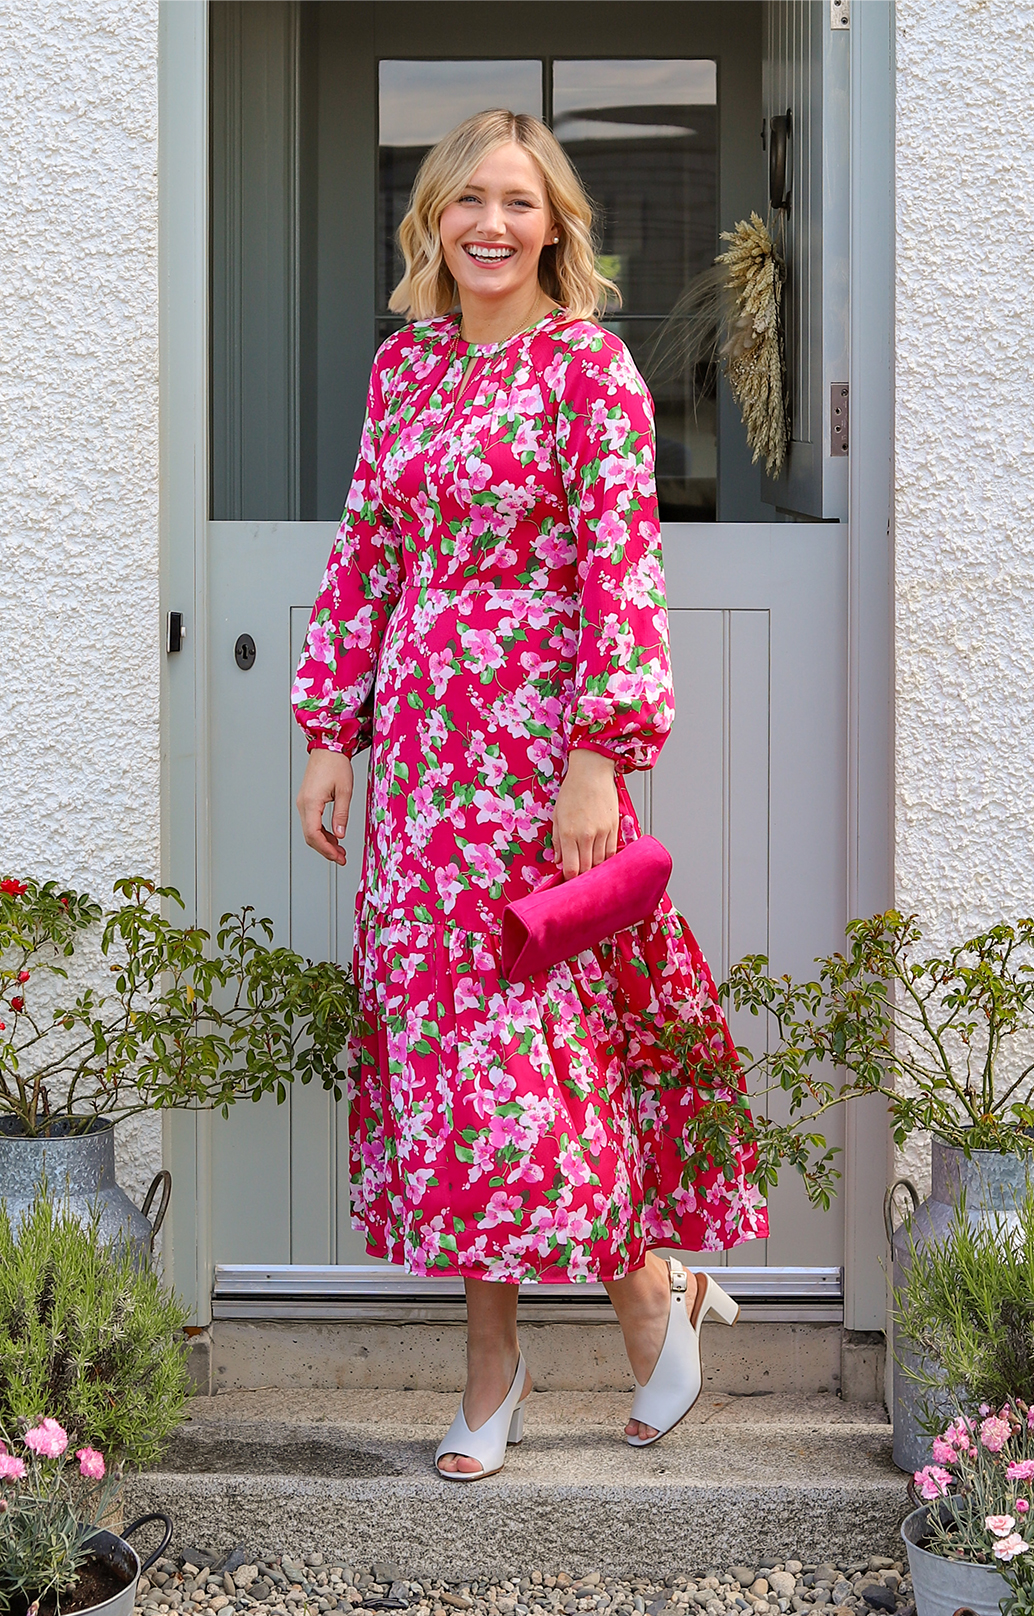 Lifestyle blogger @all.thats.pretty photographed in her garden wearing Hobbs' Marilyn pink floral midi dress with Kali ivory heels.